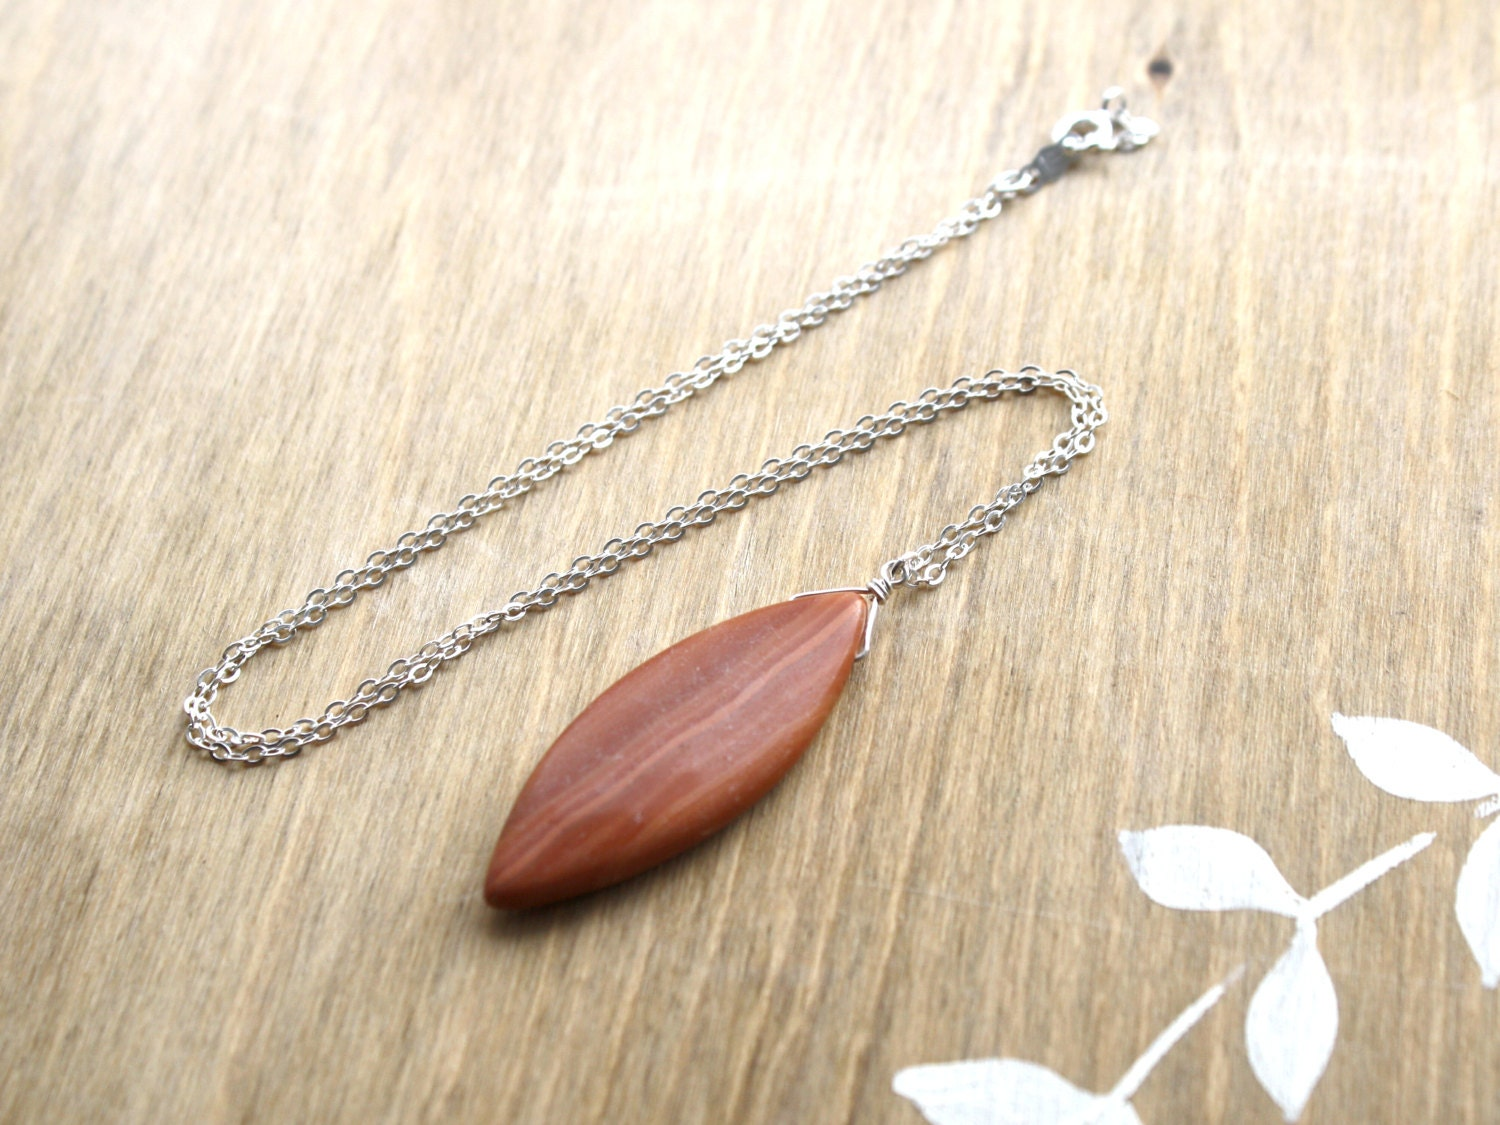 Protection amulet necklace stone chakra balancing pendant protection amulet necklace stone chakra balancing pendant necklace red zebra jasper necklace silver mozeypictures Image collections